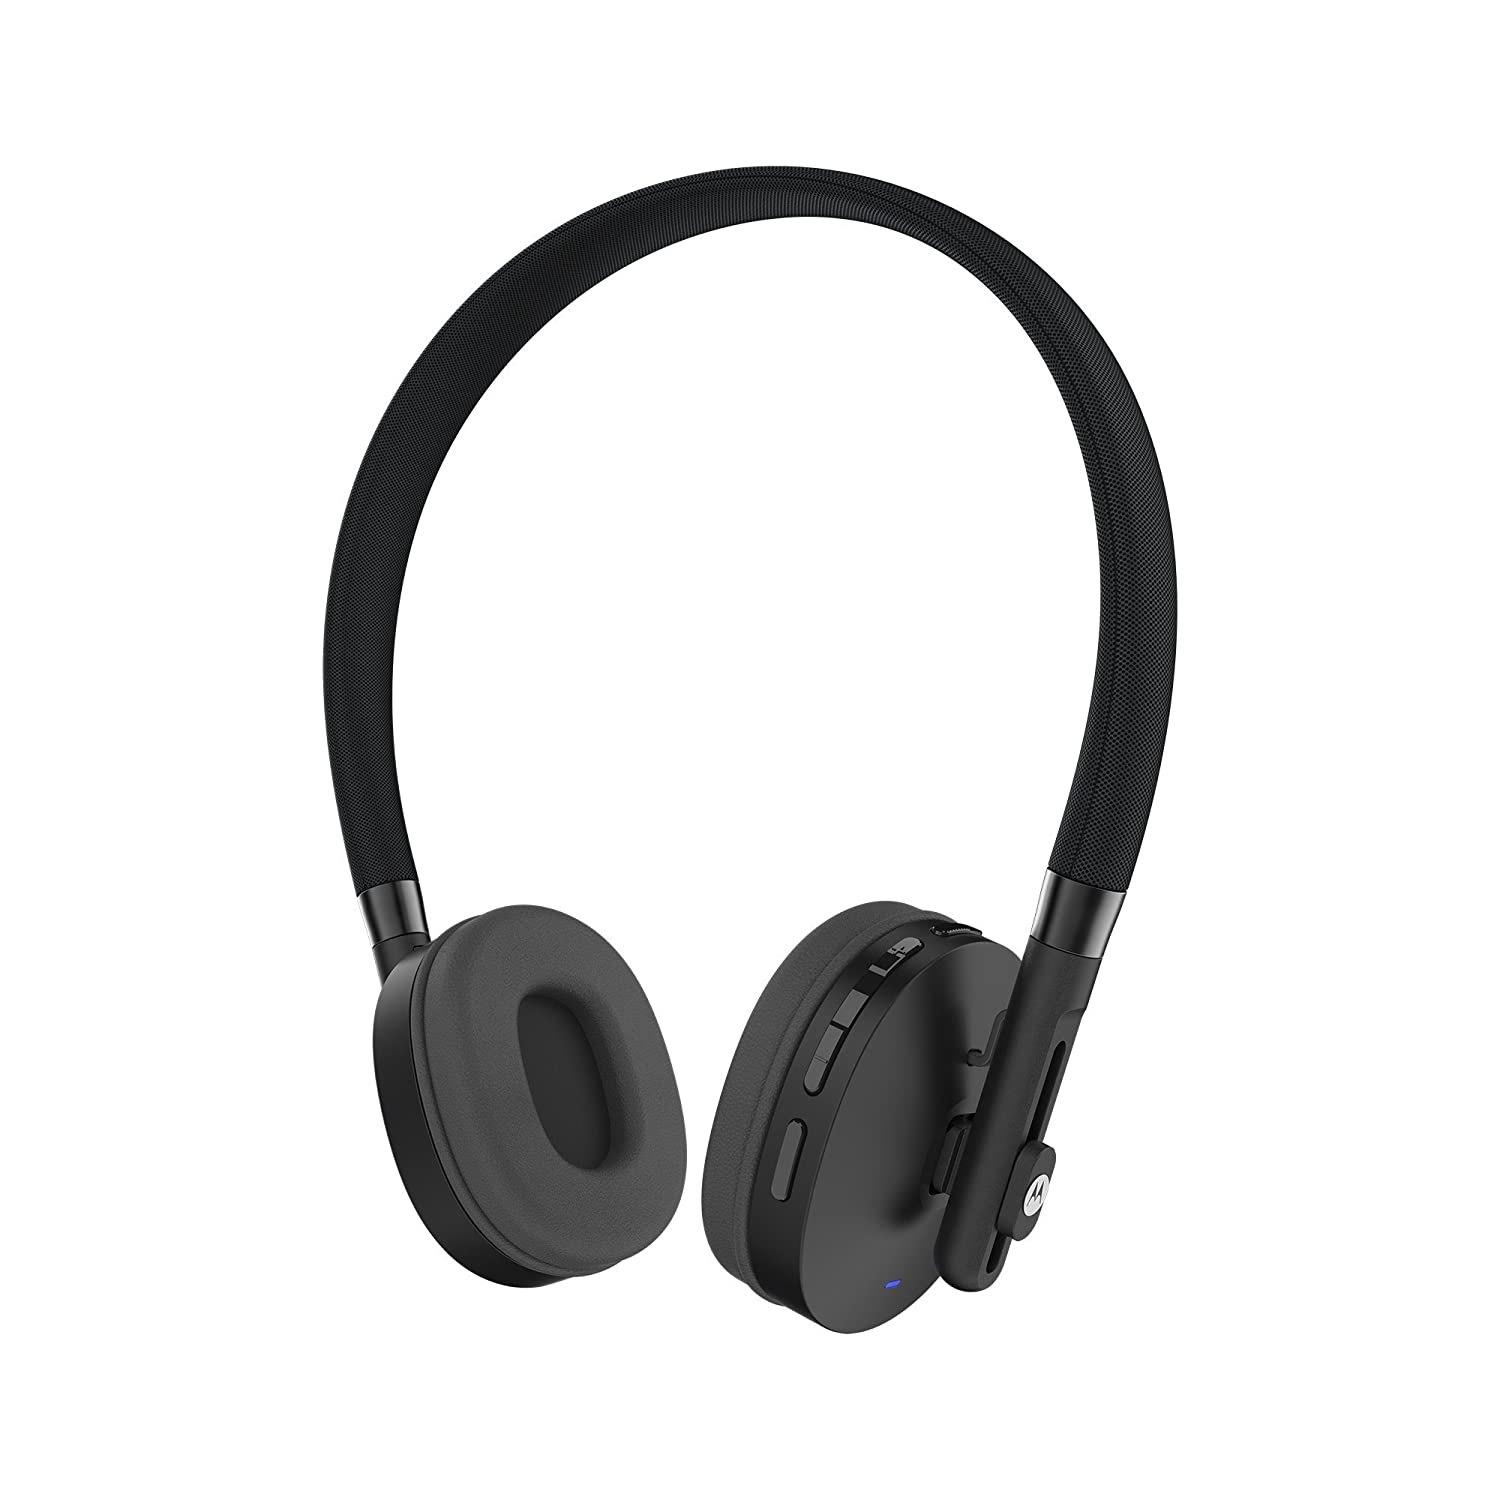 motorola headphones. motorola pulse bluetooth wireless on-ear headphones for android or ios device,black: pulse: amazon.in: electronics e